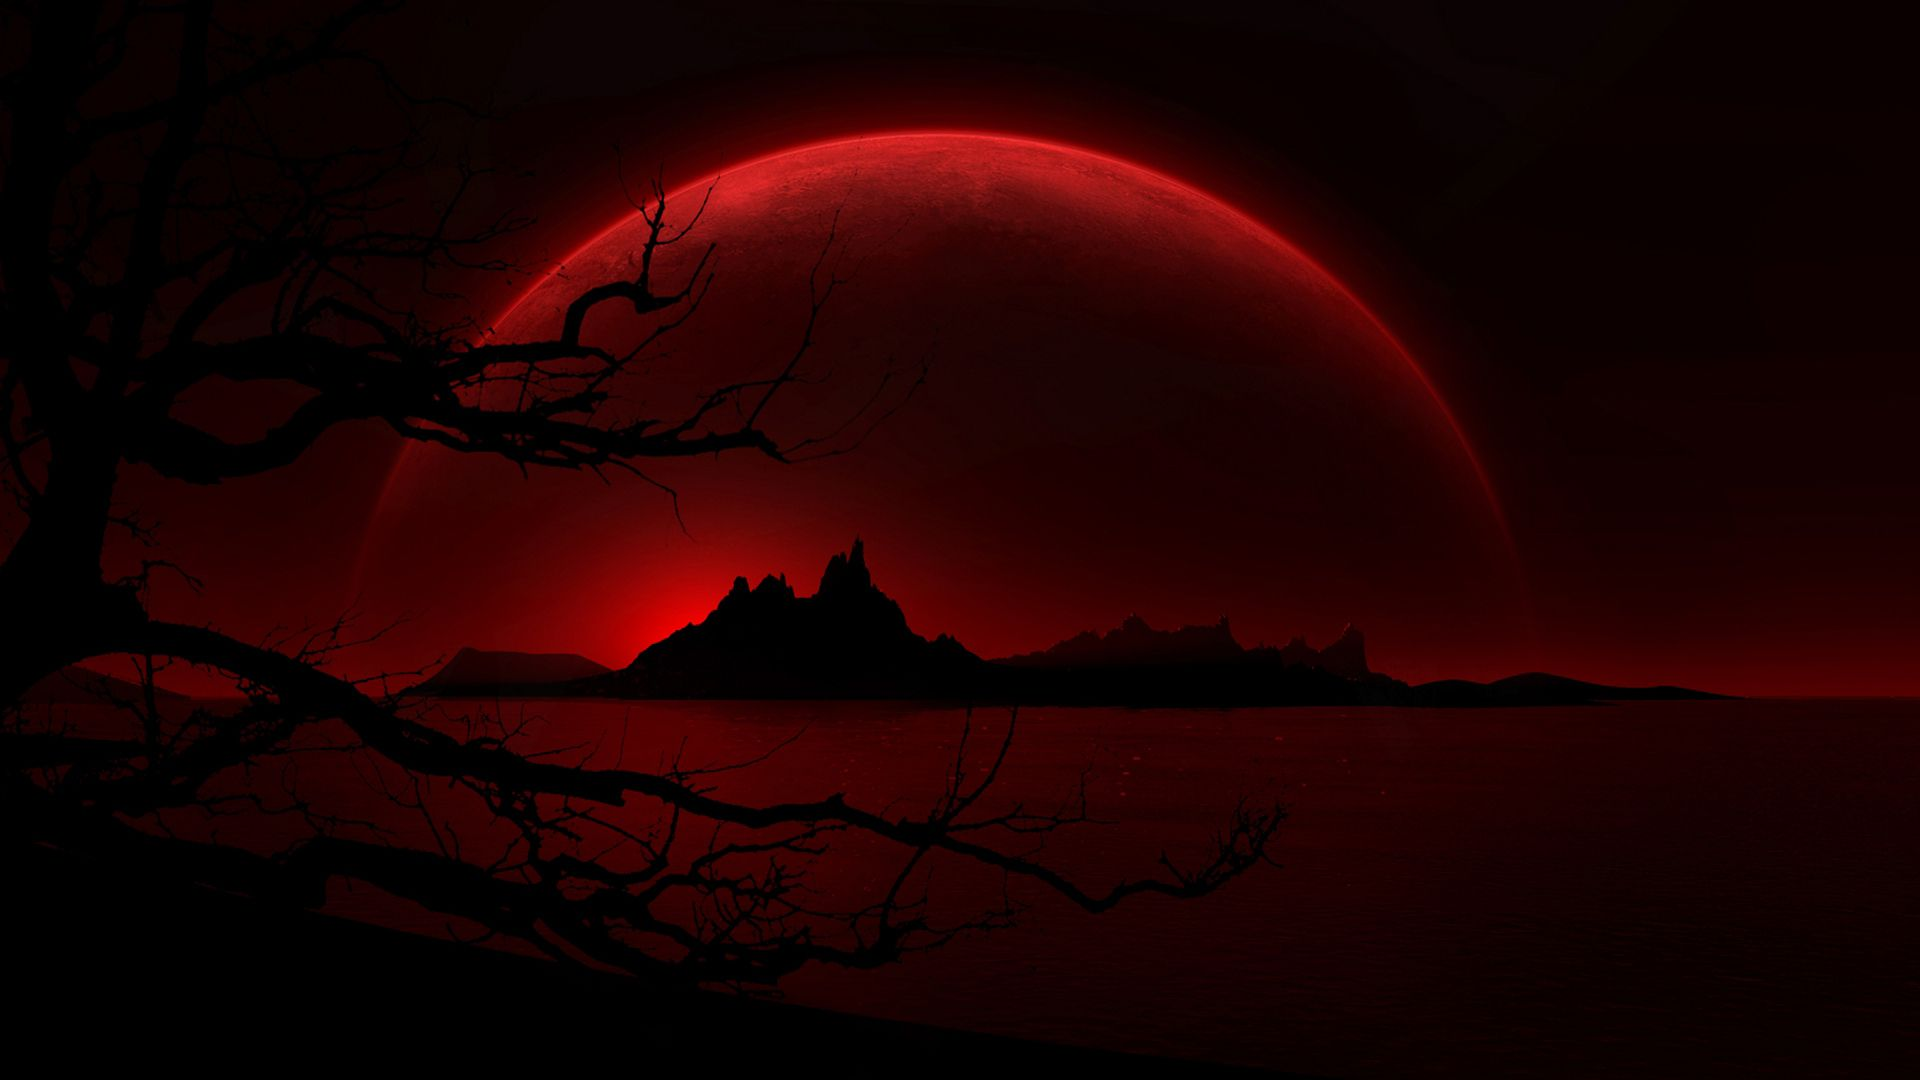 Love Wallpaper Blood : blood-red-moon-hd-wallpaper-341068.jpg (1920x1080 ...